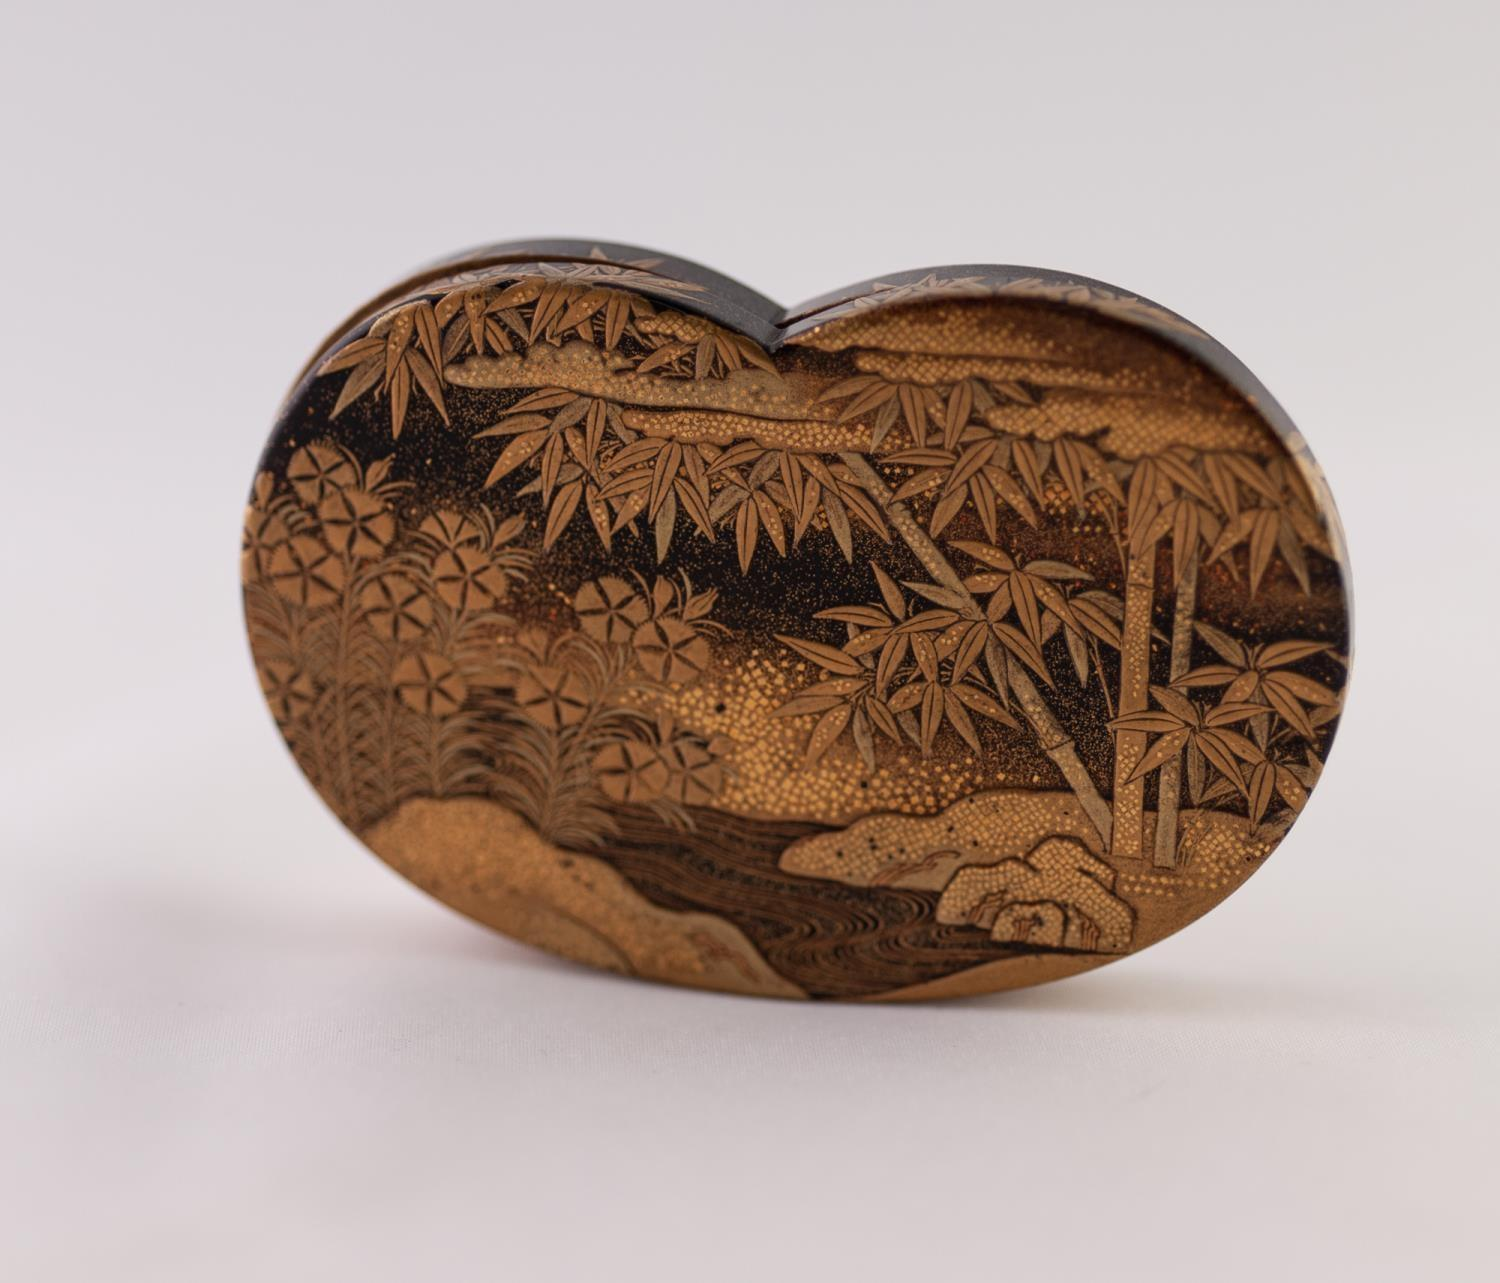 Lot 40 - A SMALL JAPANESE MEIJI PERIOD GOLD LAQUERED SHALLOW KIDNEY-SHAPES BOX, the removable cover with